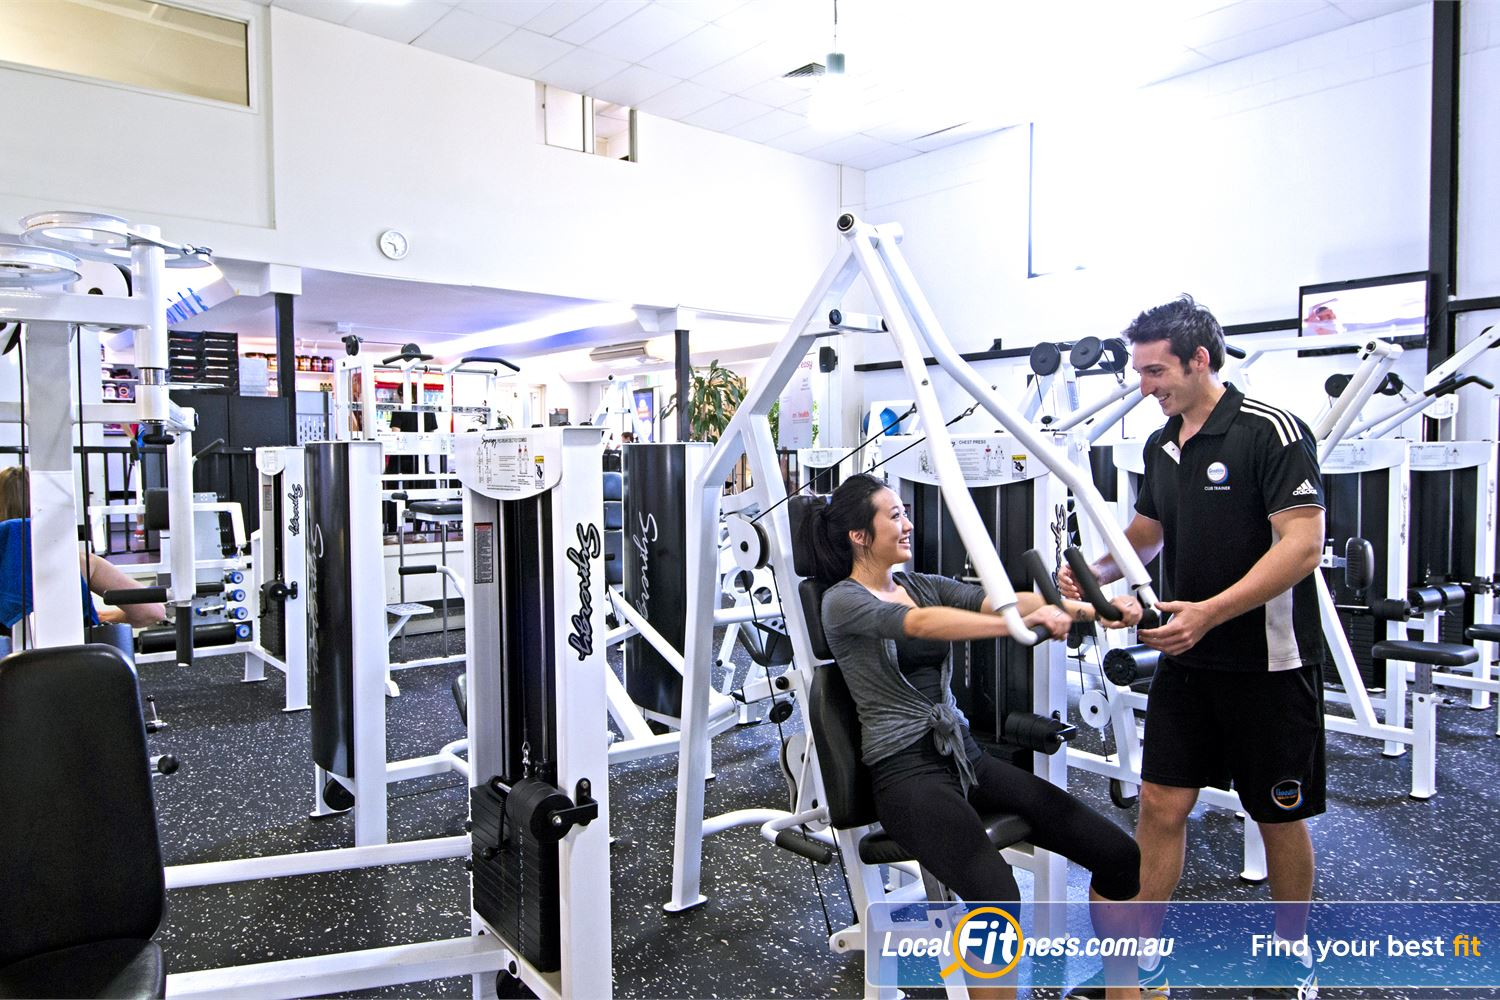 Goodlife Health Clubs Graceville Our Graceville personal trainers specialise in strength and weight-loss.